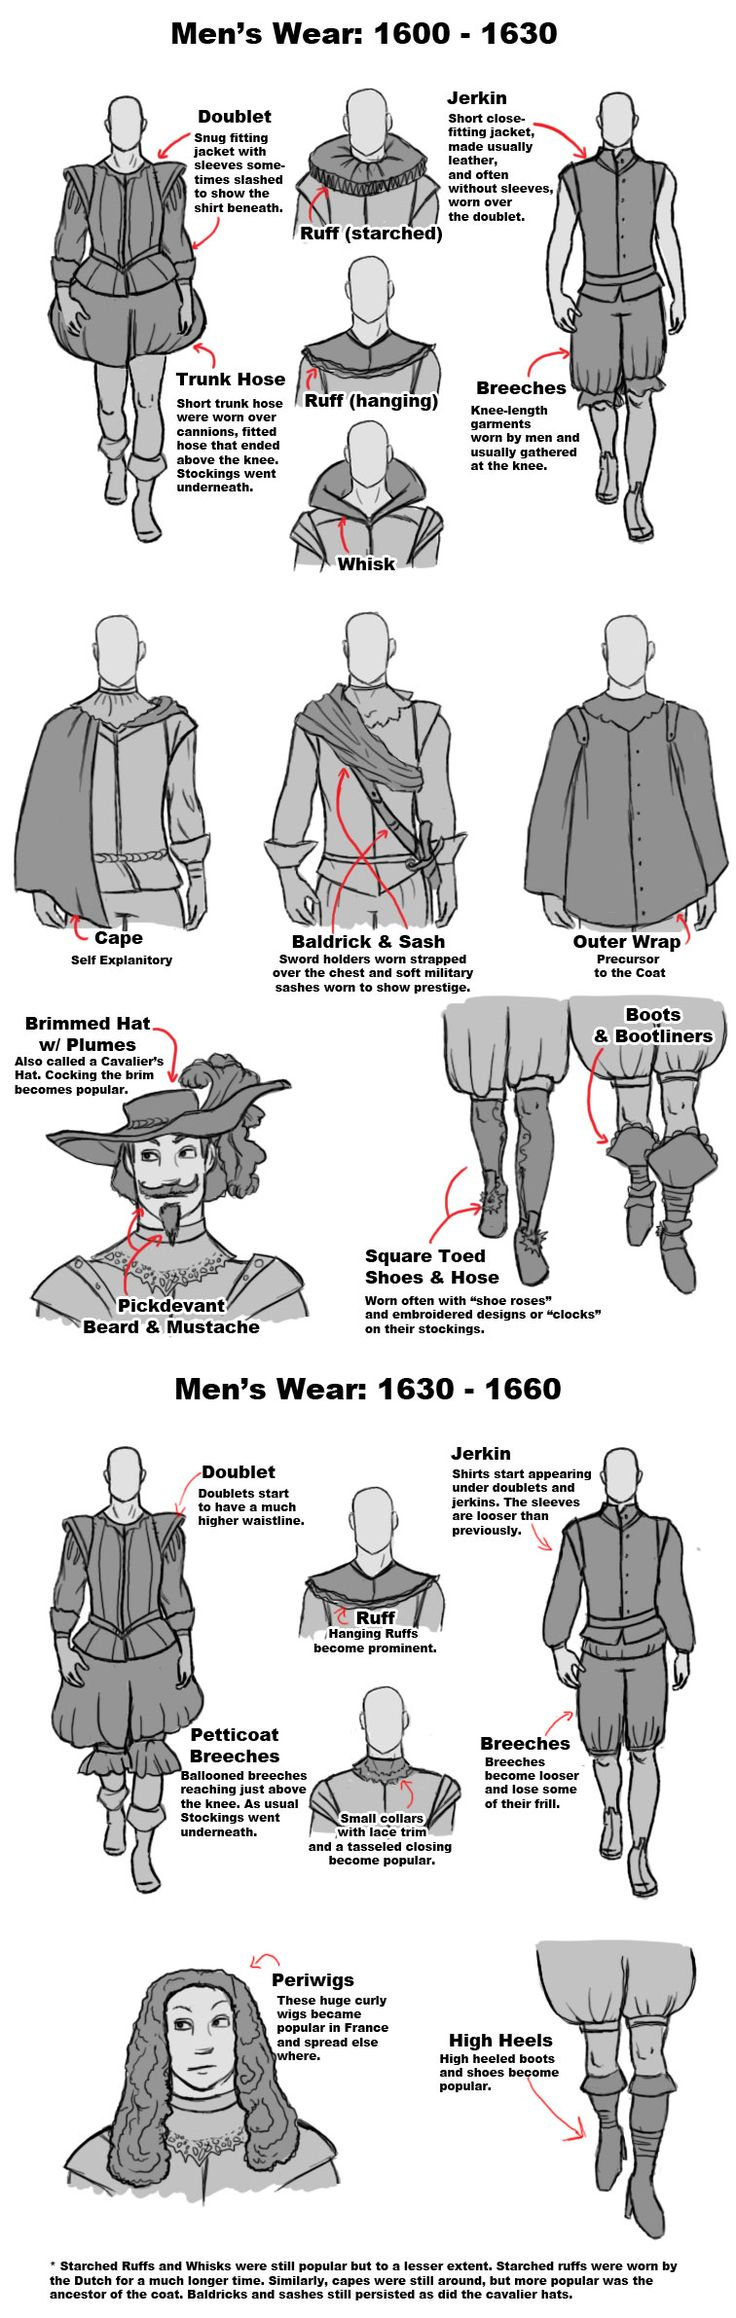 Early 17th Century Menswear by MelissaDalton.deviantart.com on @deviantART